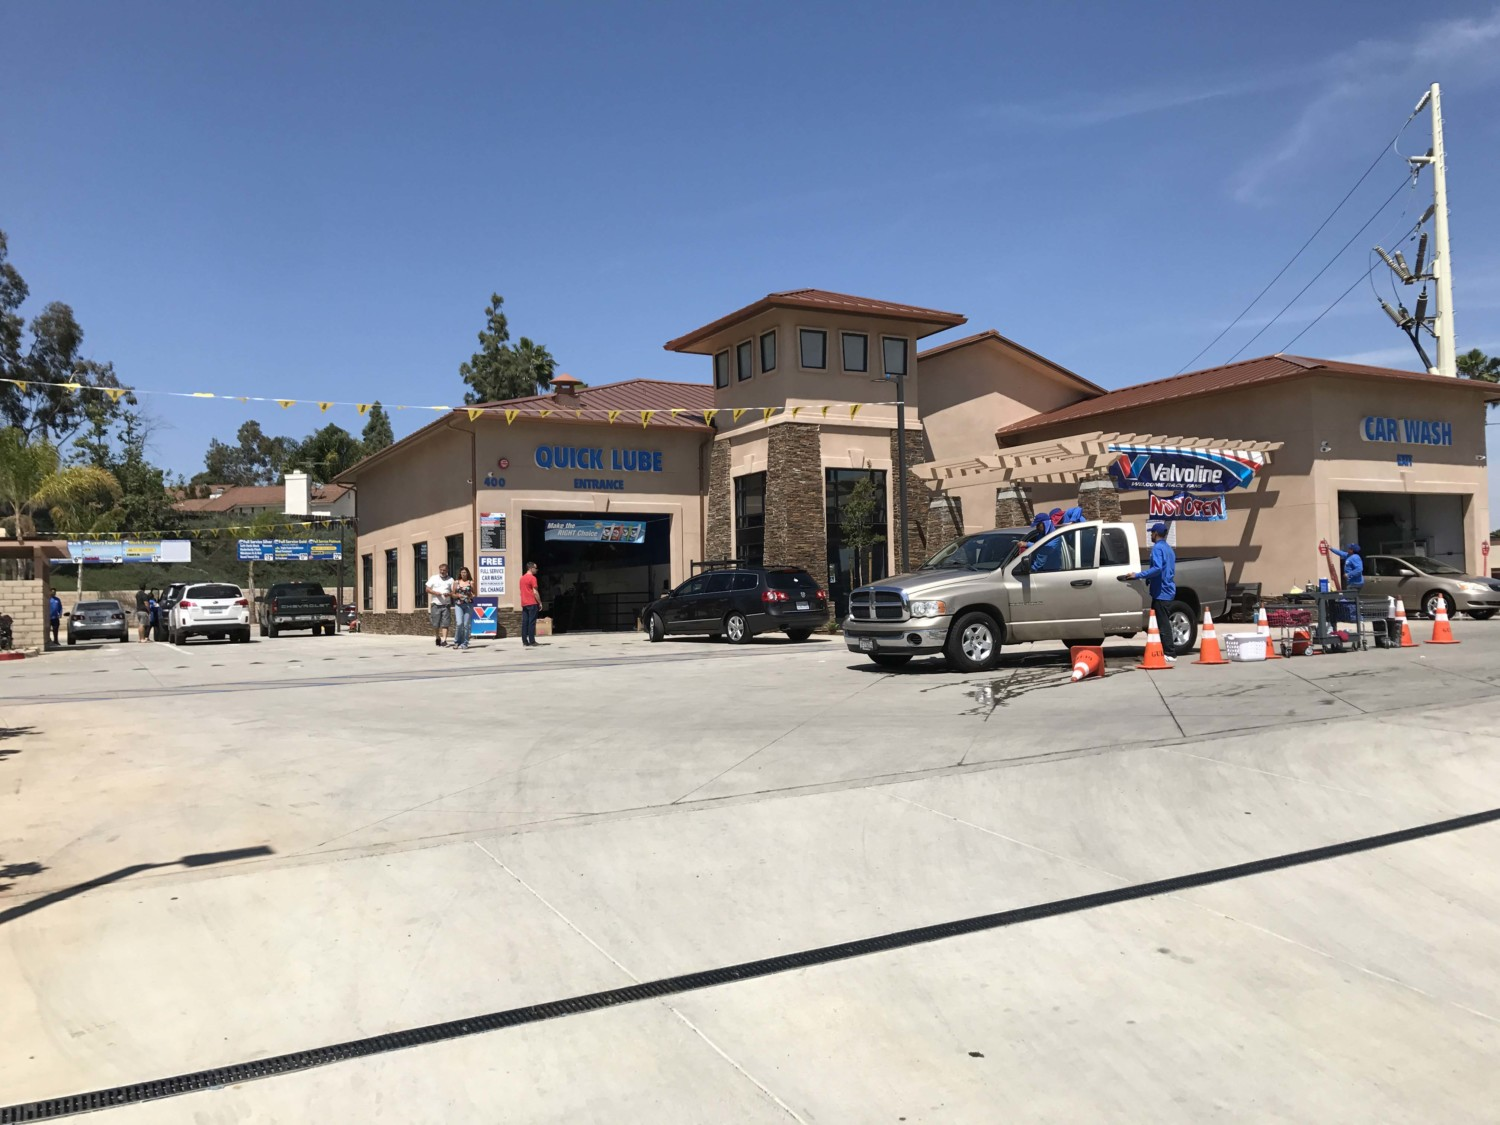 New buildings bring feeling of life to south escondido the coast the neighborhoods ongoing facelift has also been enhanced with the addition of talk of the town auto spa lube which opened only a few months ago on a solutioingenieria Images